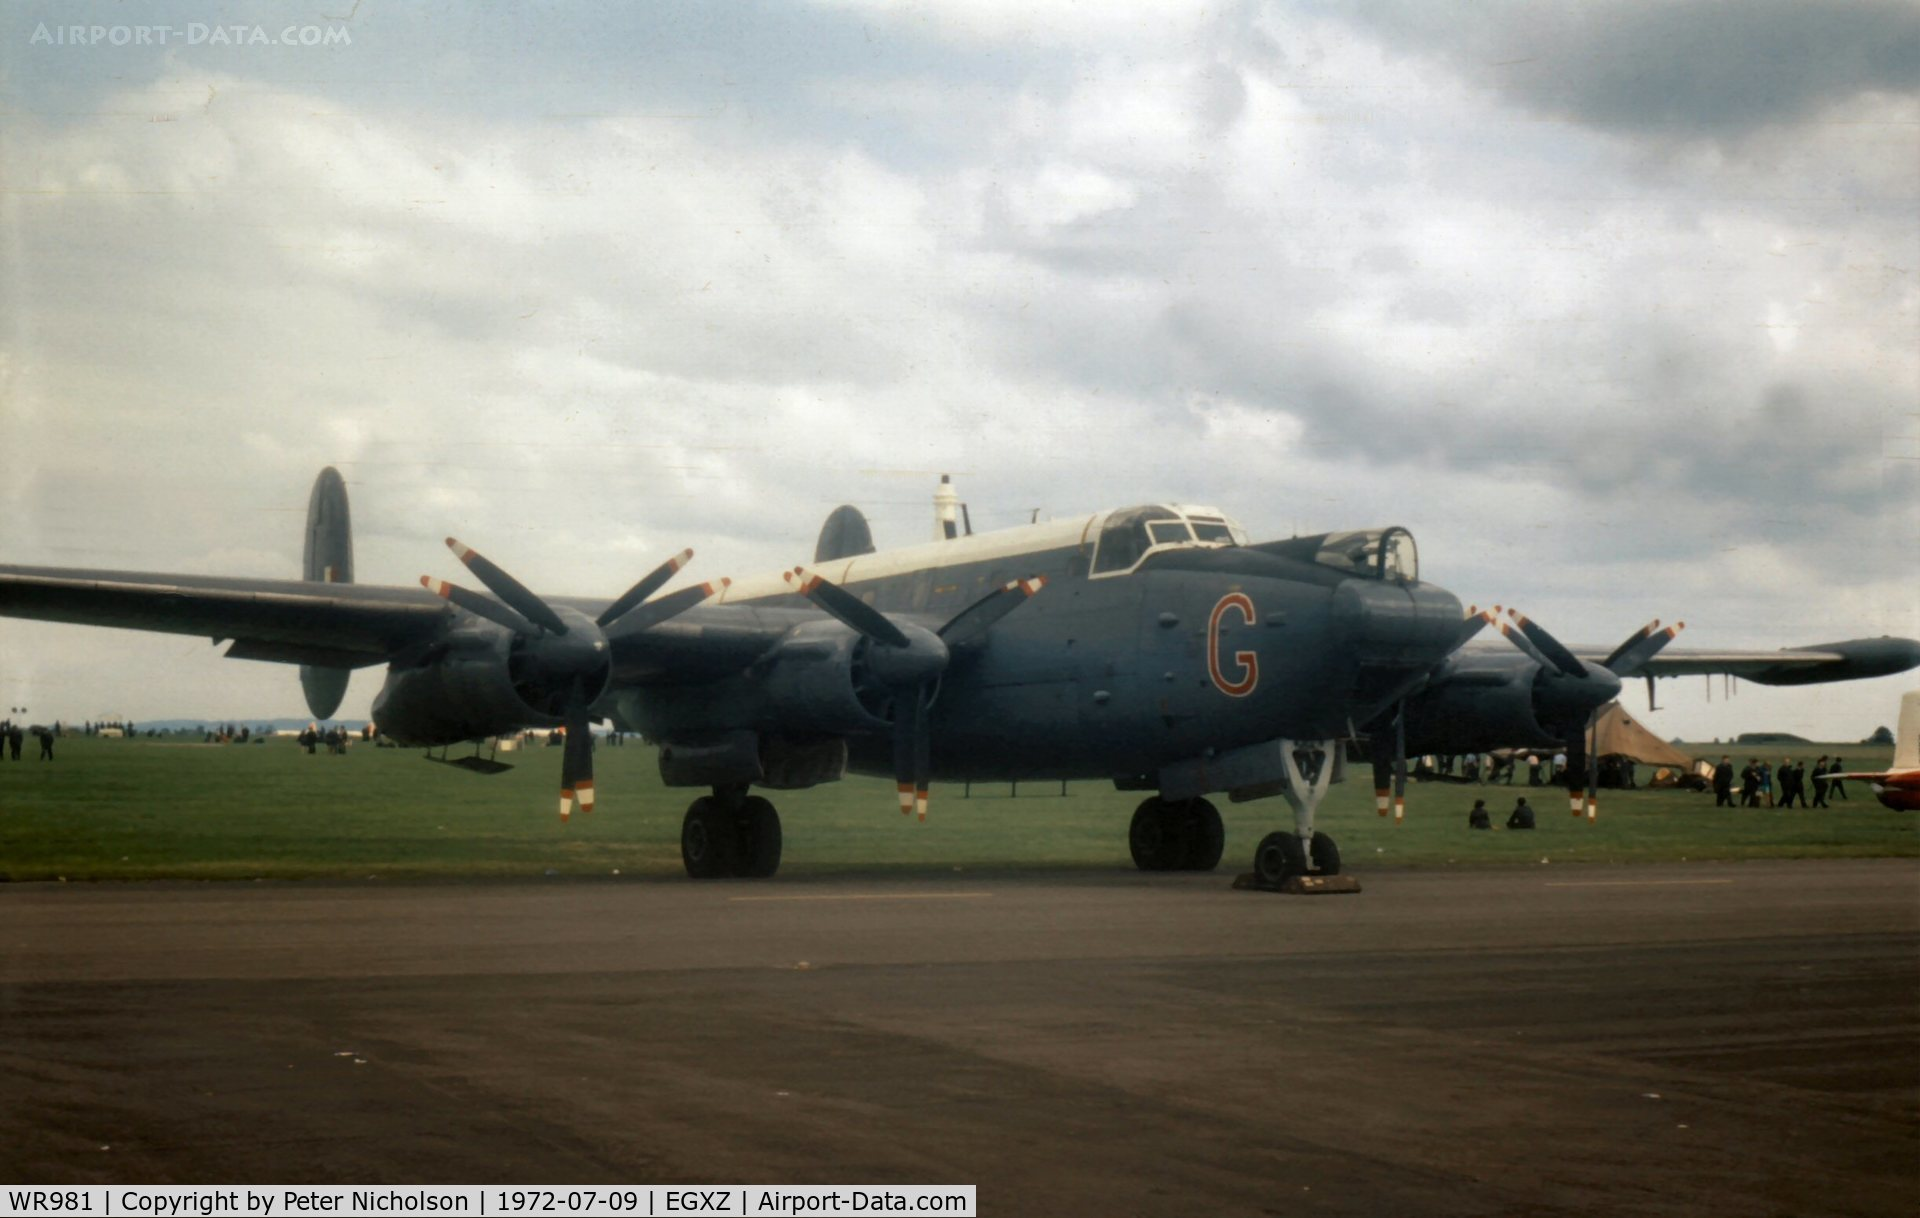 WR981, 1957 Avro 716 Shackleton MR.3/3 C/N Not found WR981, Shackleton MR.3/3 in the static display at the 1972 Topcliffe Open Day.